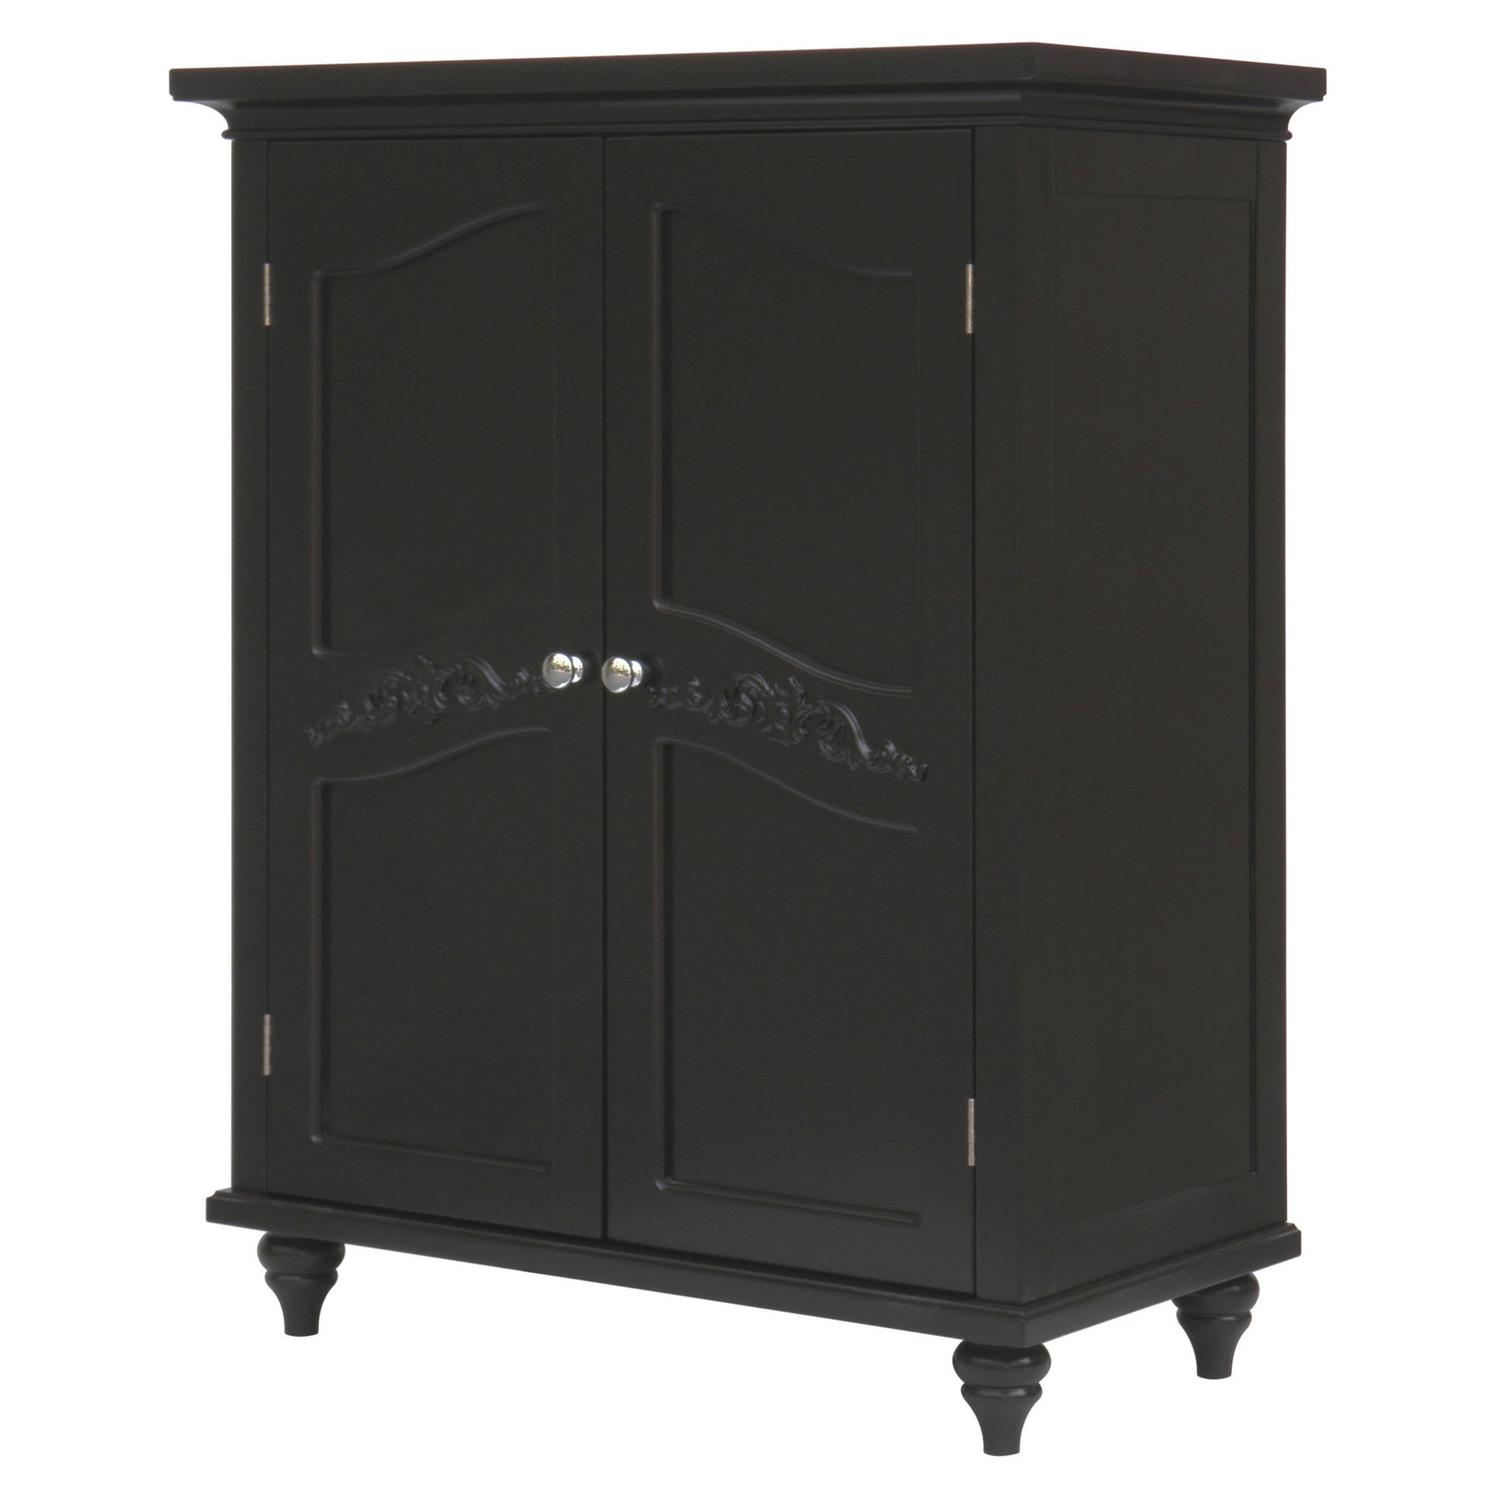 Dark Espresso Wood Bathroom Floor Cabinet With Traditional Crafted Engraving Doors Fastfurnishings Com